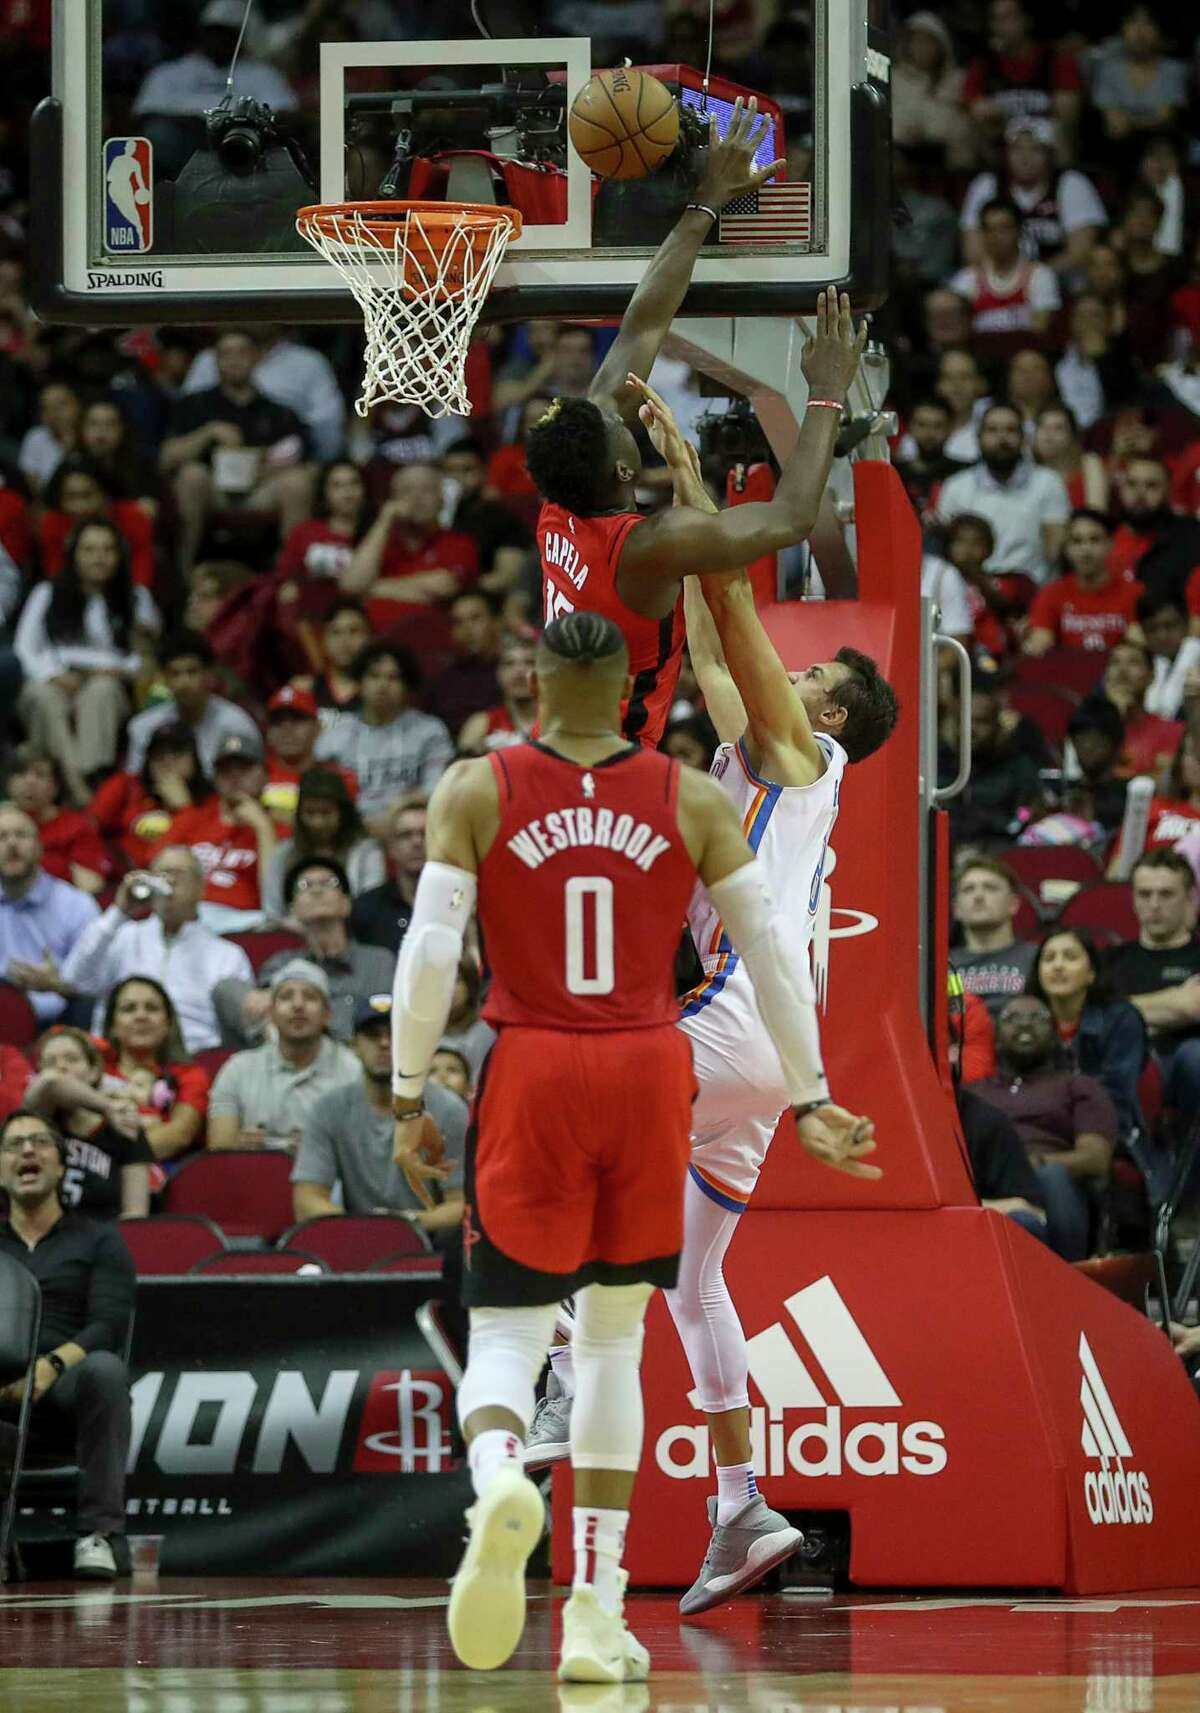 Houston Rockets center Clint Capela (15) stops a shot by Oklahoma City Thunder forward Danilo Gallinari (8) during the second quarter of an NBA basketball game at the Toyota Center on Monday, Oct. 28, 2019, in Houston.